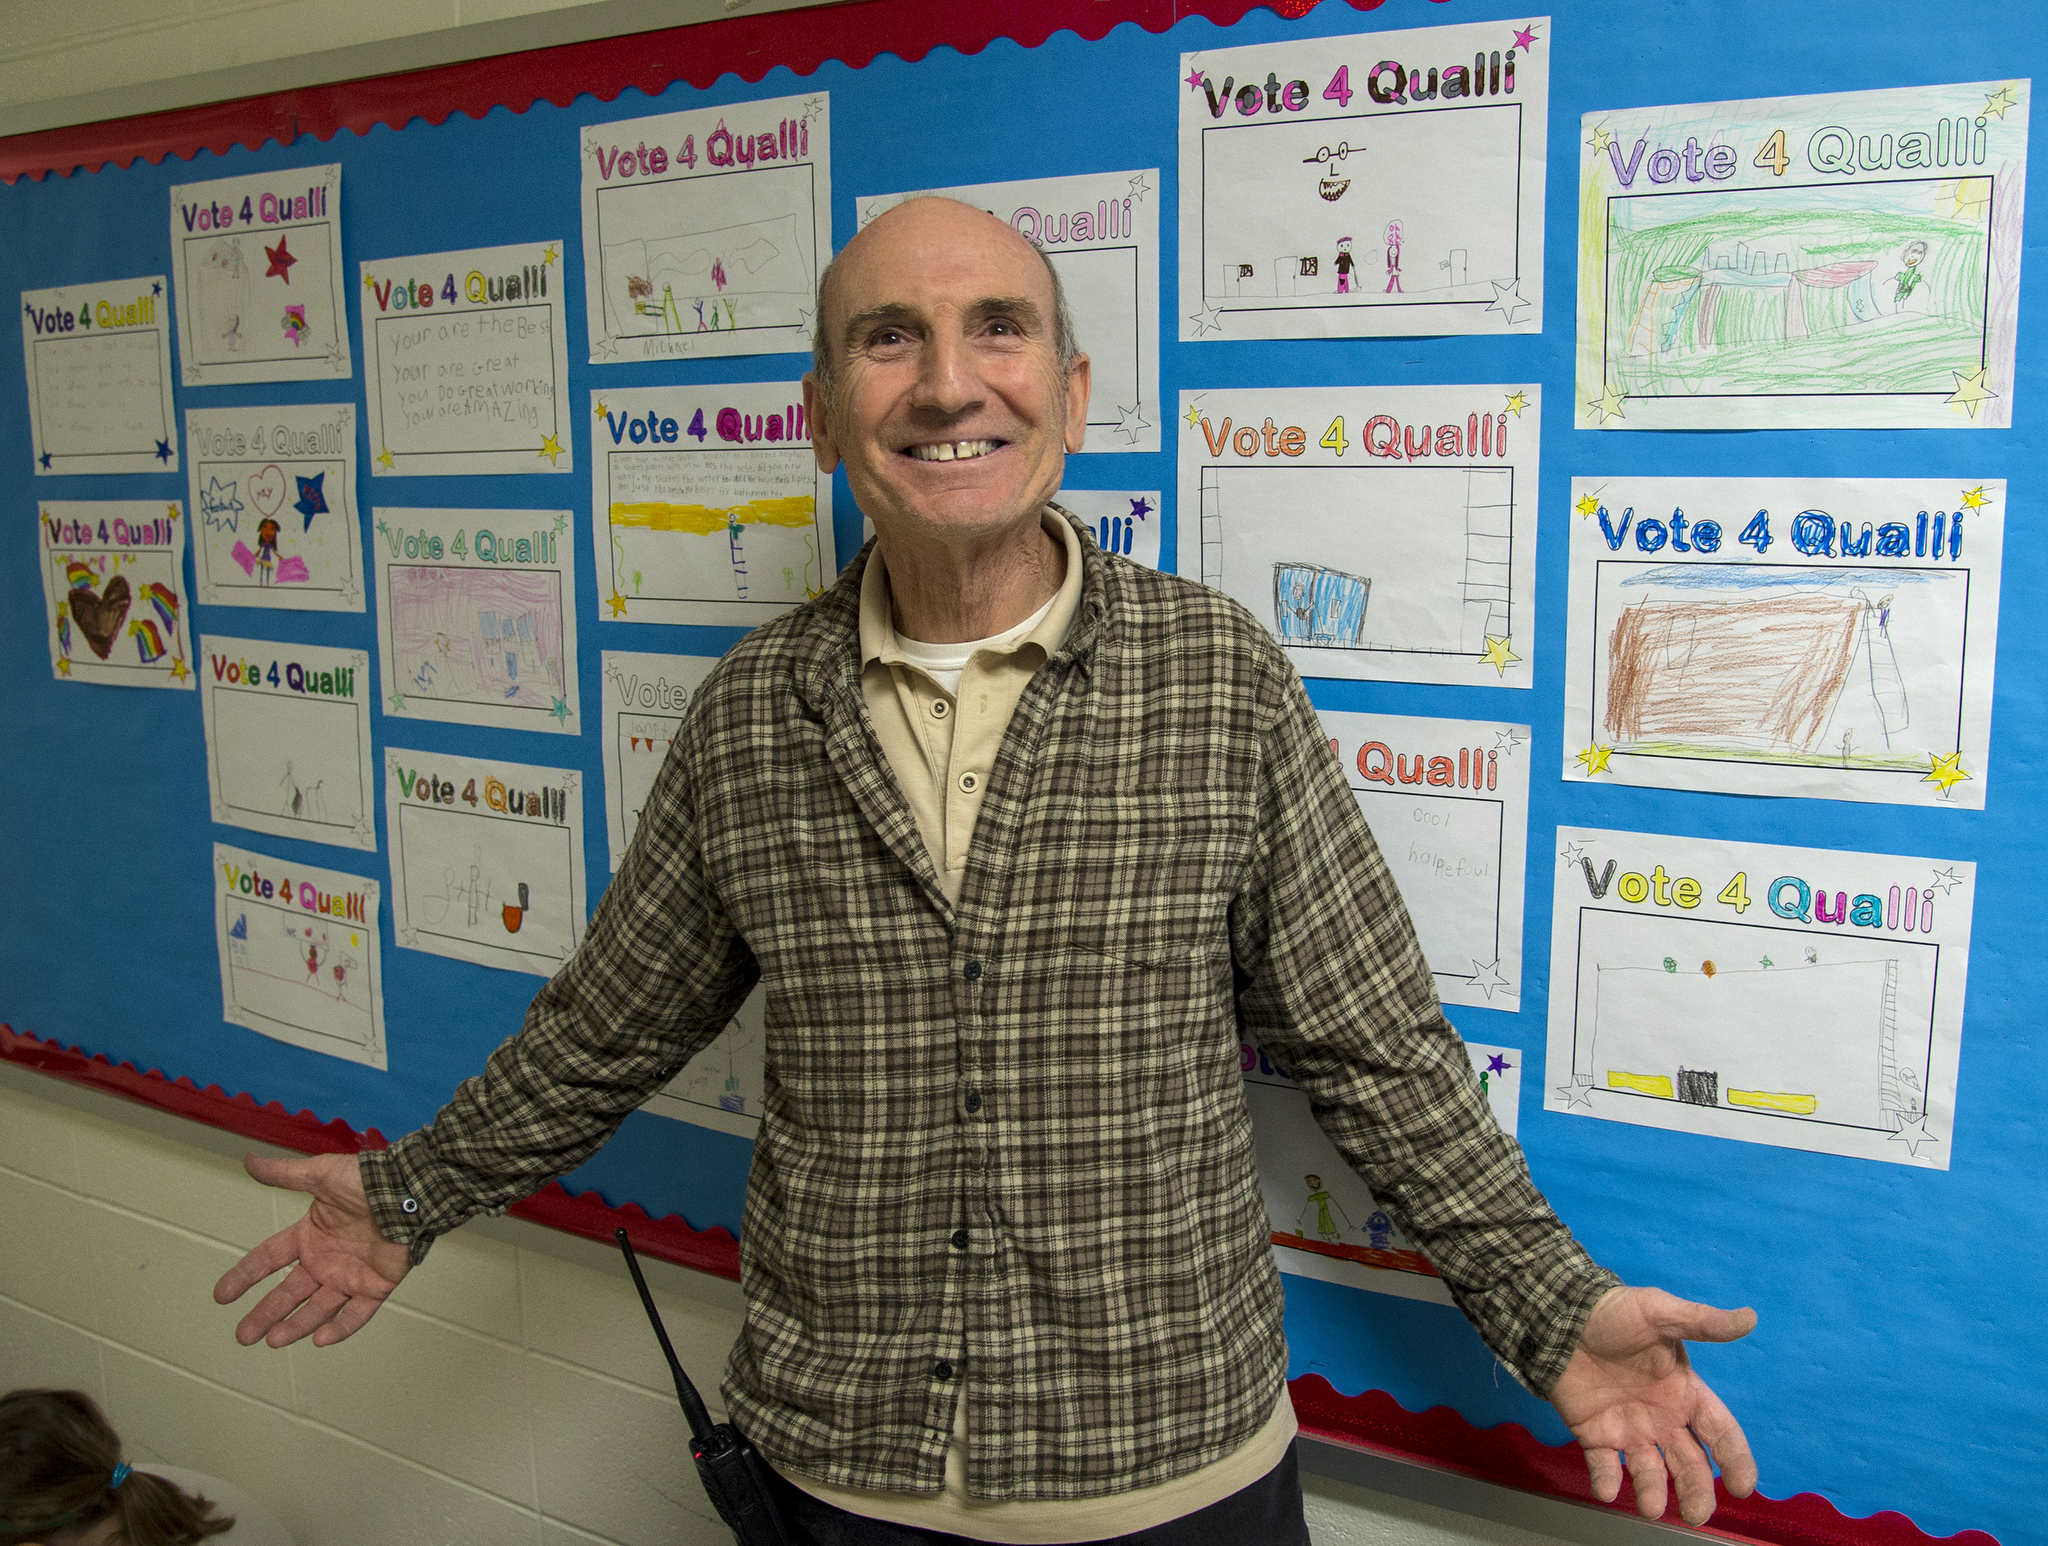 Ted Qualli, 66, beloved janitor at Newtown Elementary School in Newtown, Bucks County, stands in front of �Vote 4 Qualli� coloring sheets made by the first graders in support of Qualli�s bid to be named Janitor of the Year in a nationwide contest.